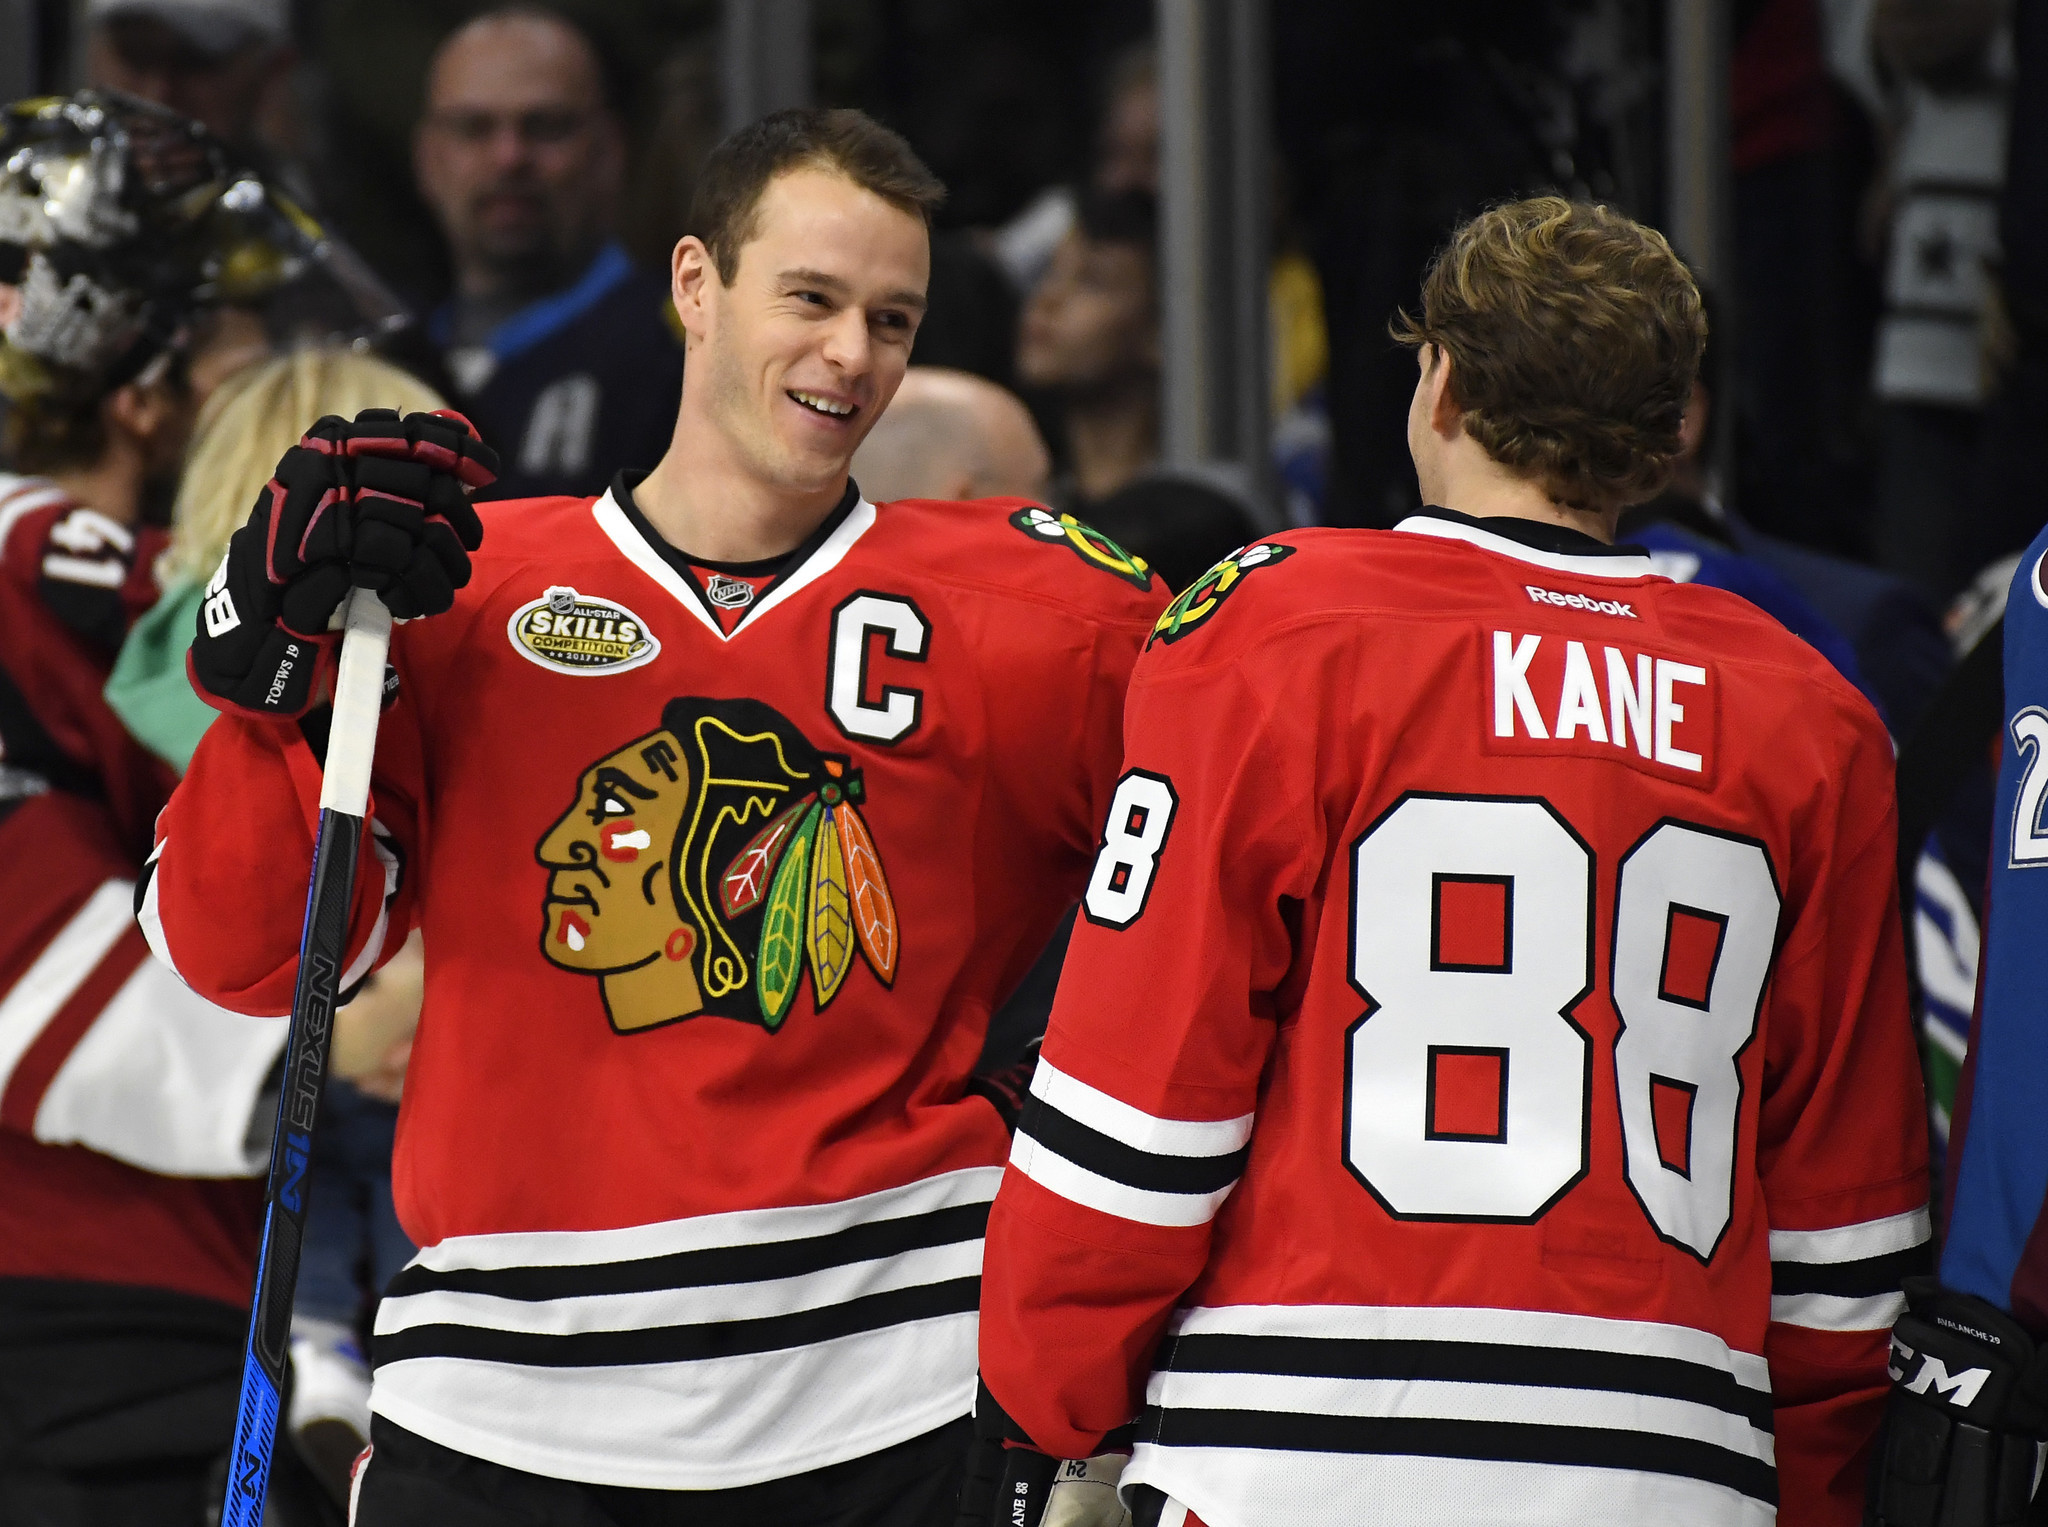 Ct-patrick-kane-jonathan-toews-haugh-spt-0303-20170302